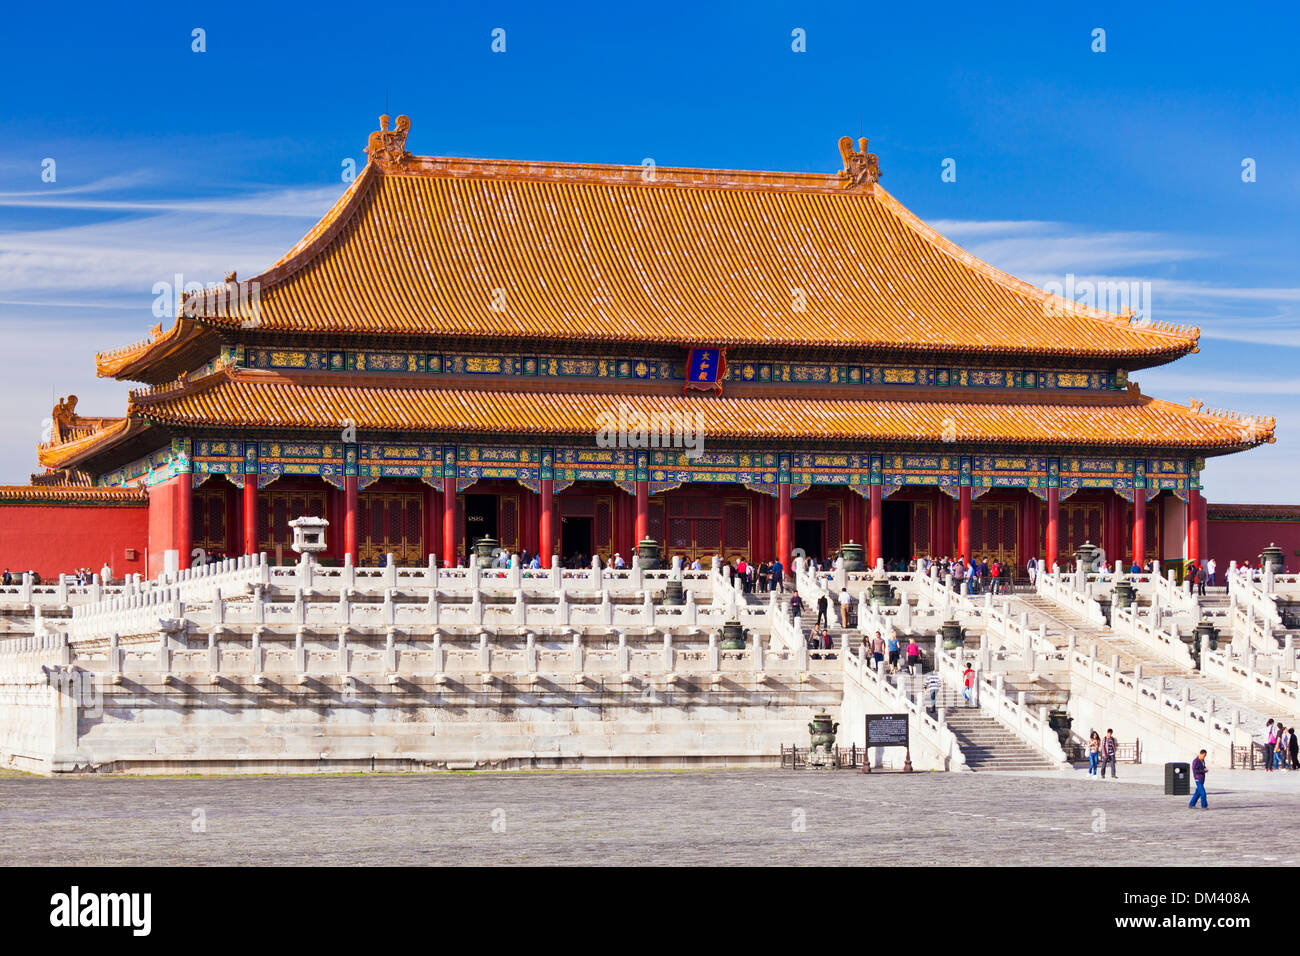 Hall of Supreme Harmony, Outer Court, Forbidden City, Beijing, Peoples Republic of China, Asia - Stock Image